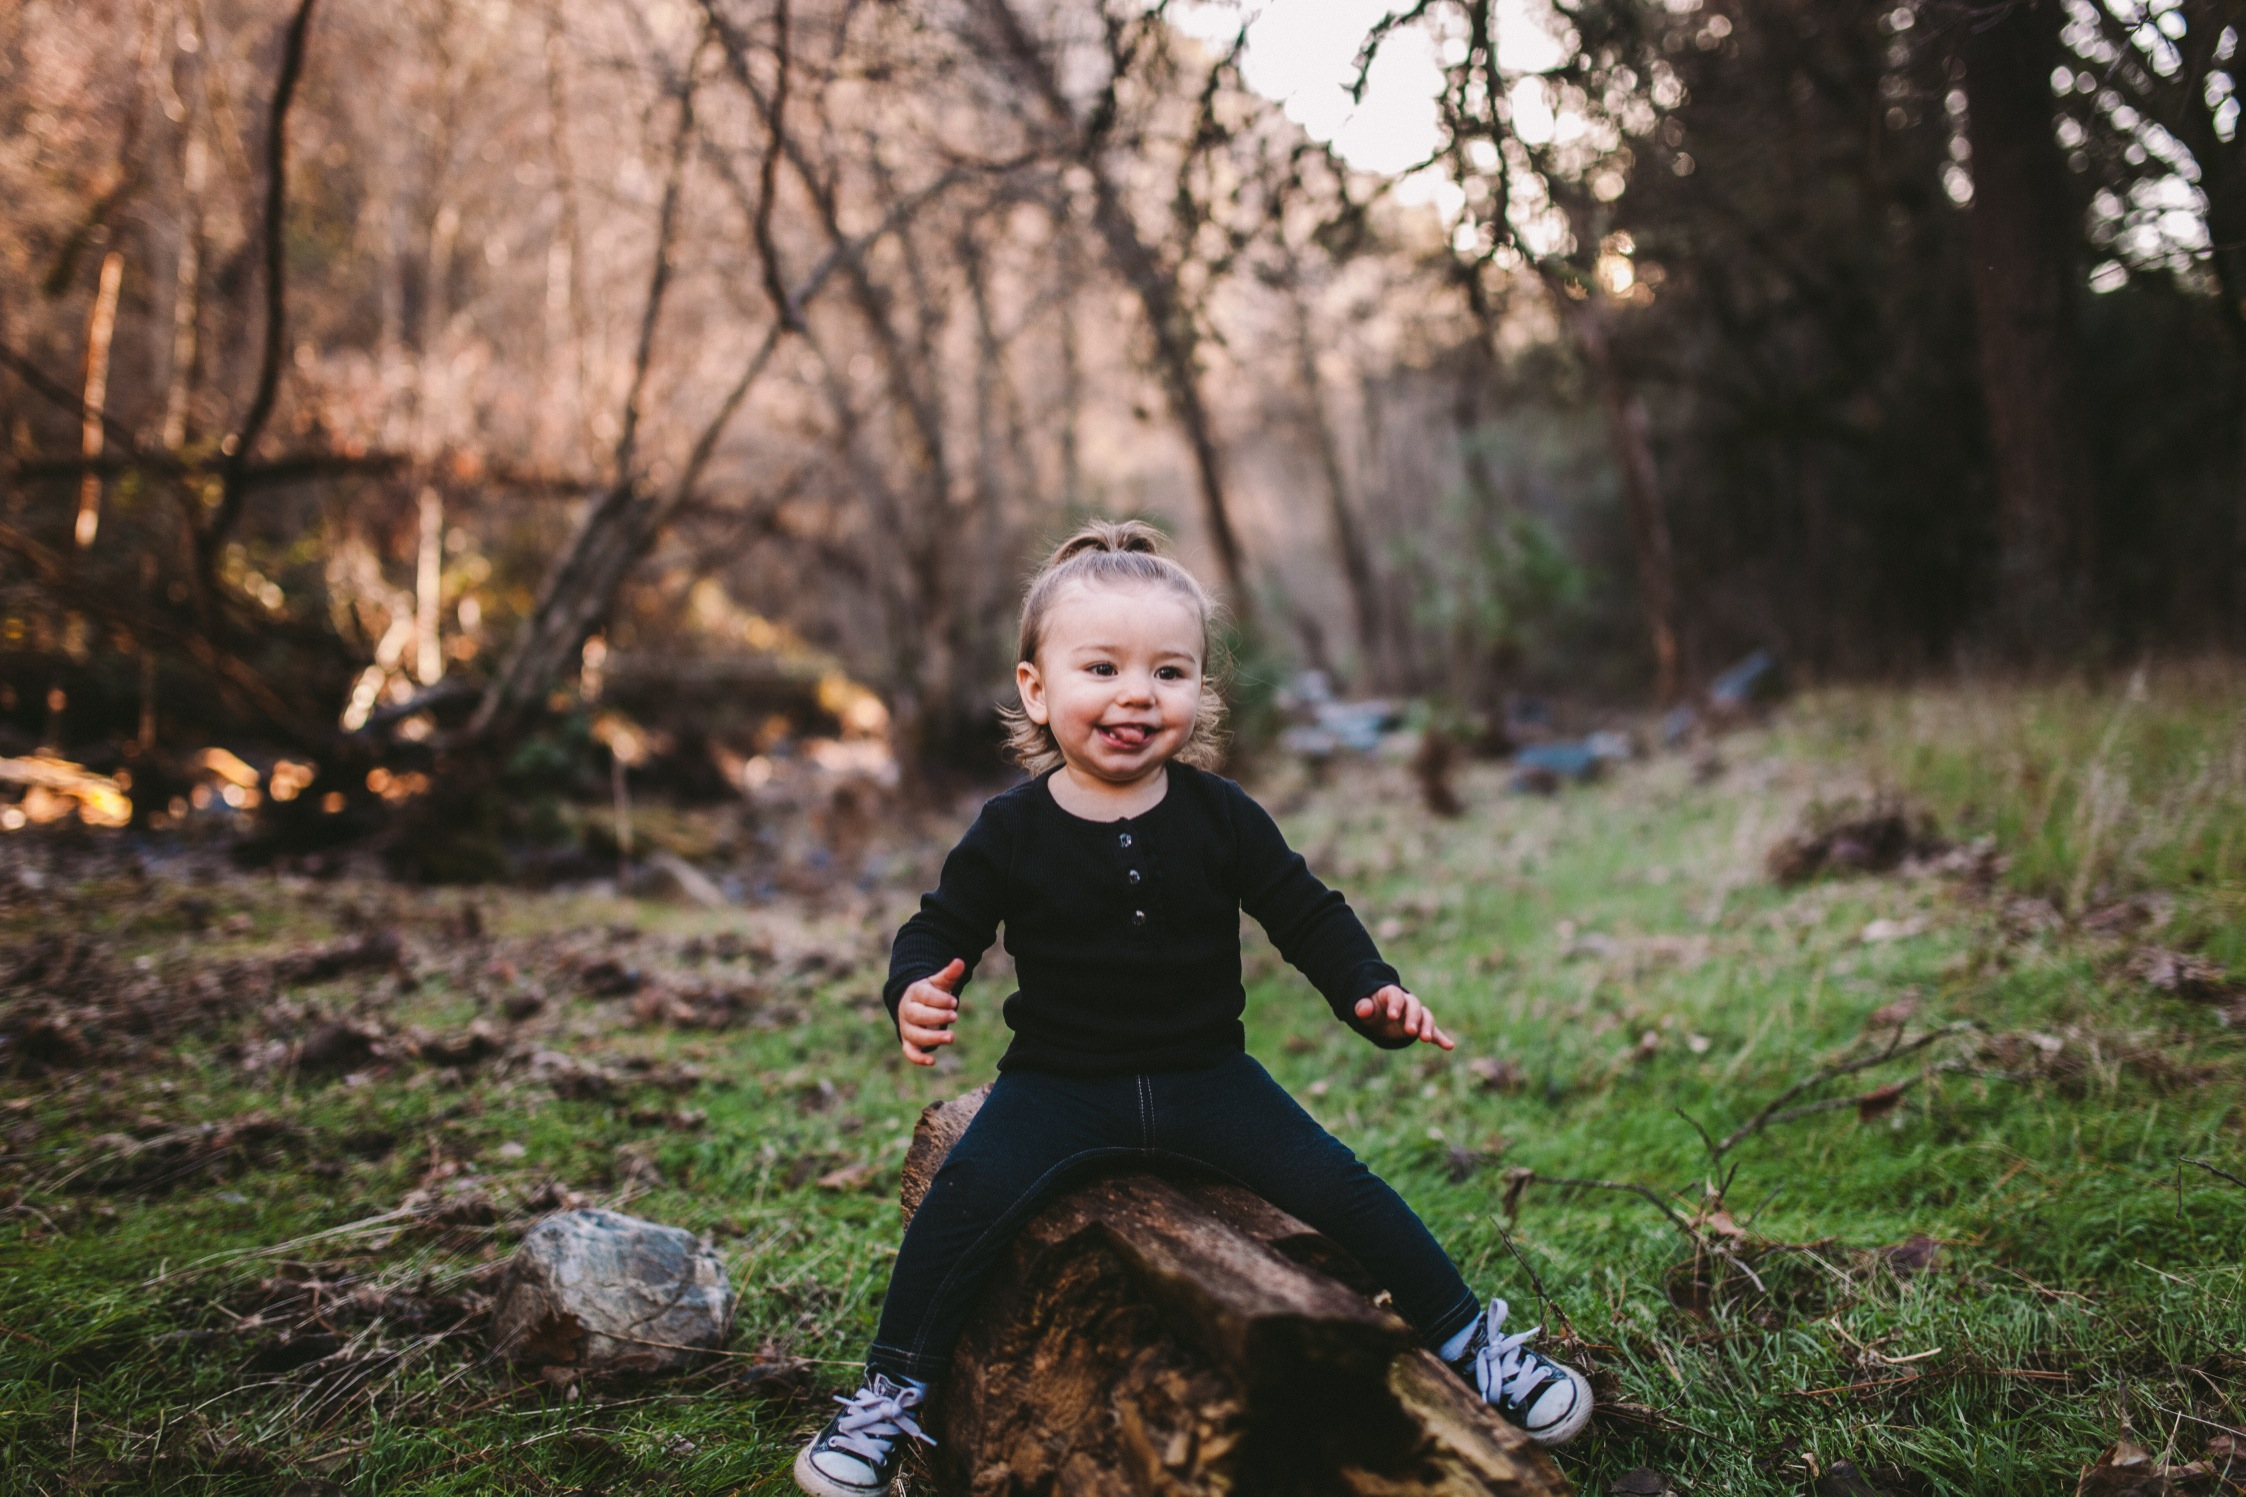 Toddler Sits on Log in Photography Portrait Northern Caliornia